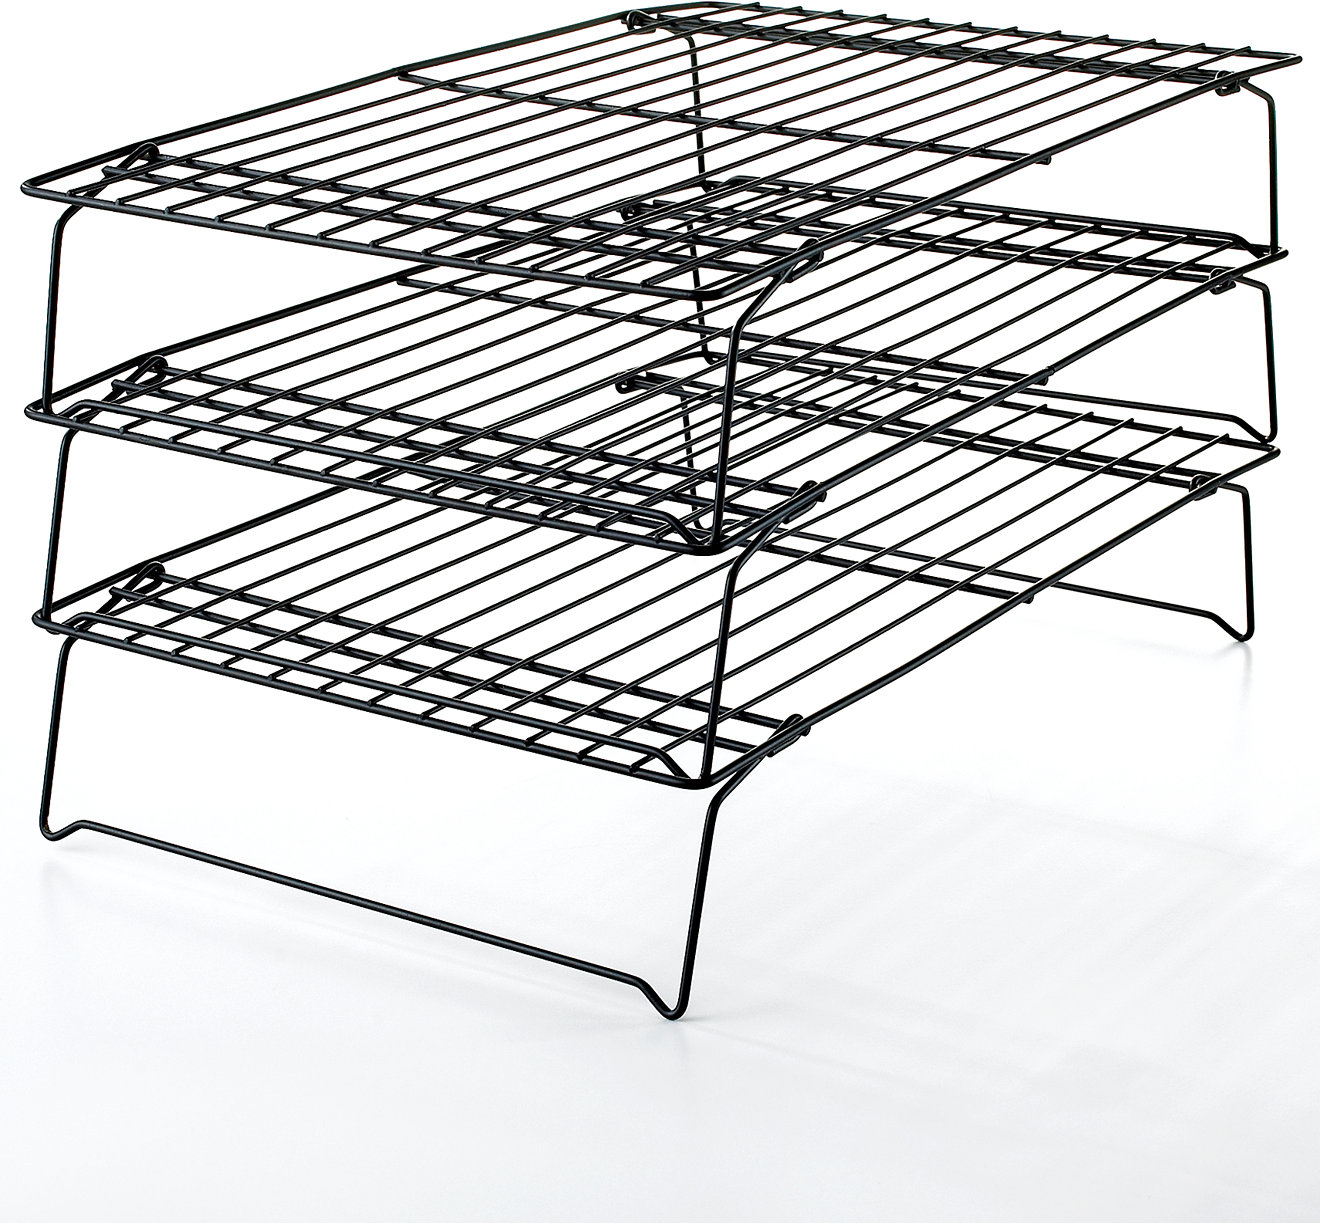 White apron macy's - Wilton 3 Tier Nonstick Cooling Rack Bakeware Kitchen Macy S Bridal And Wedding Registry